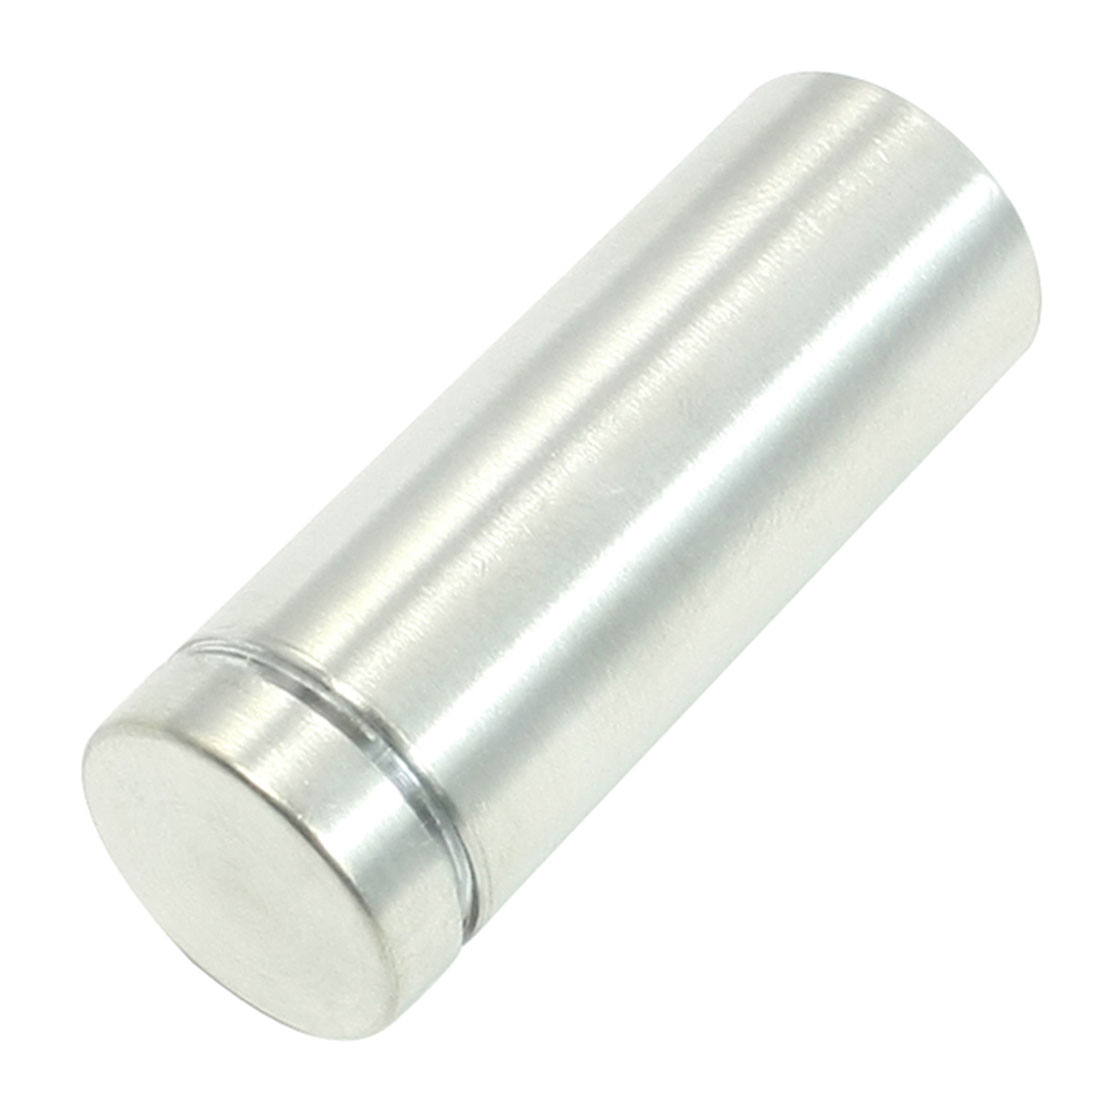 Stainless Steel Advertising Nail Glass Wall Connector Standoff 19mmx50mm